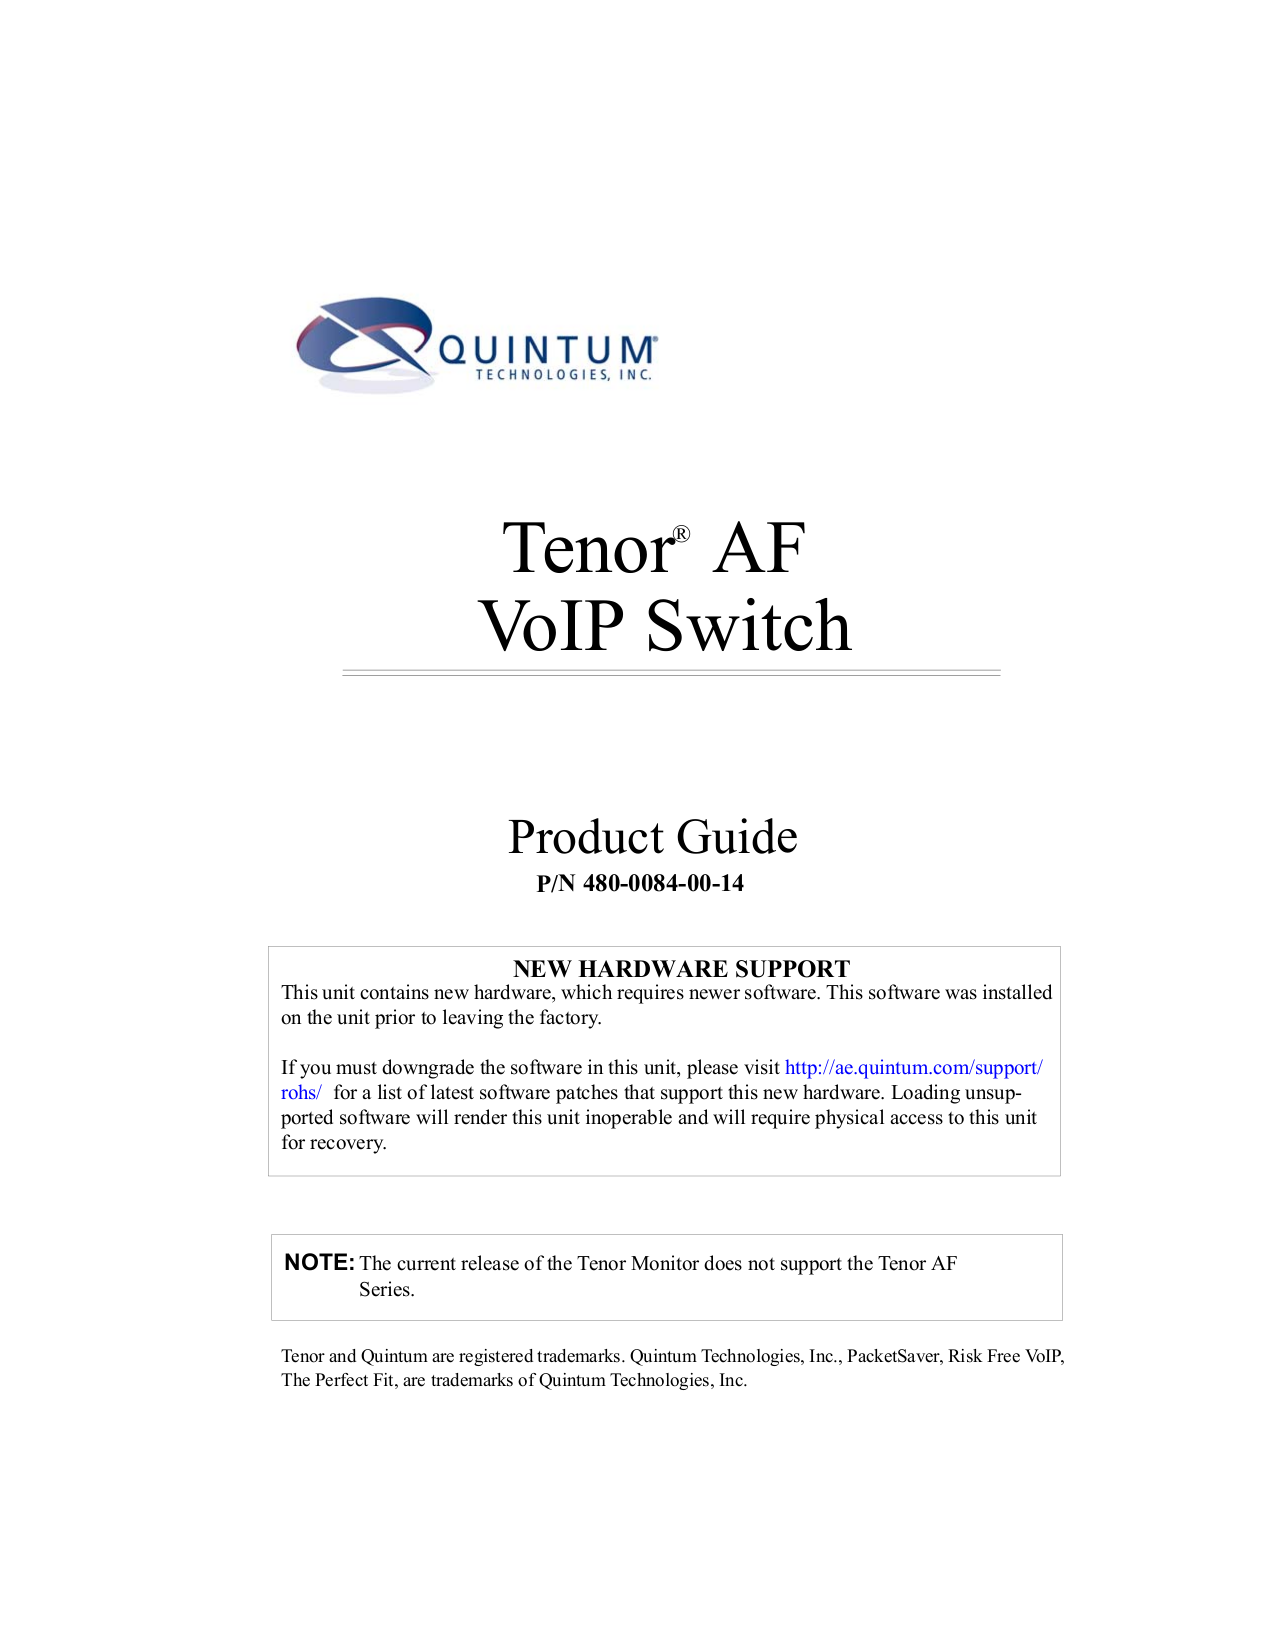 Voipswitch Manual Pdf